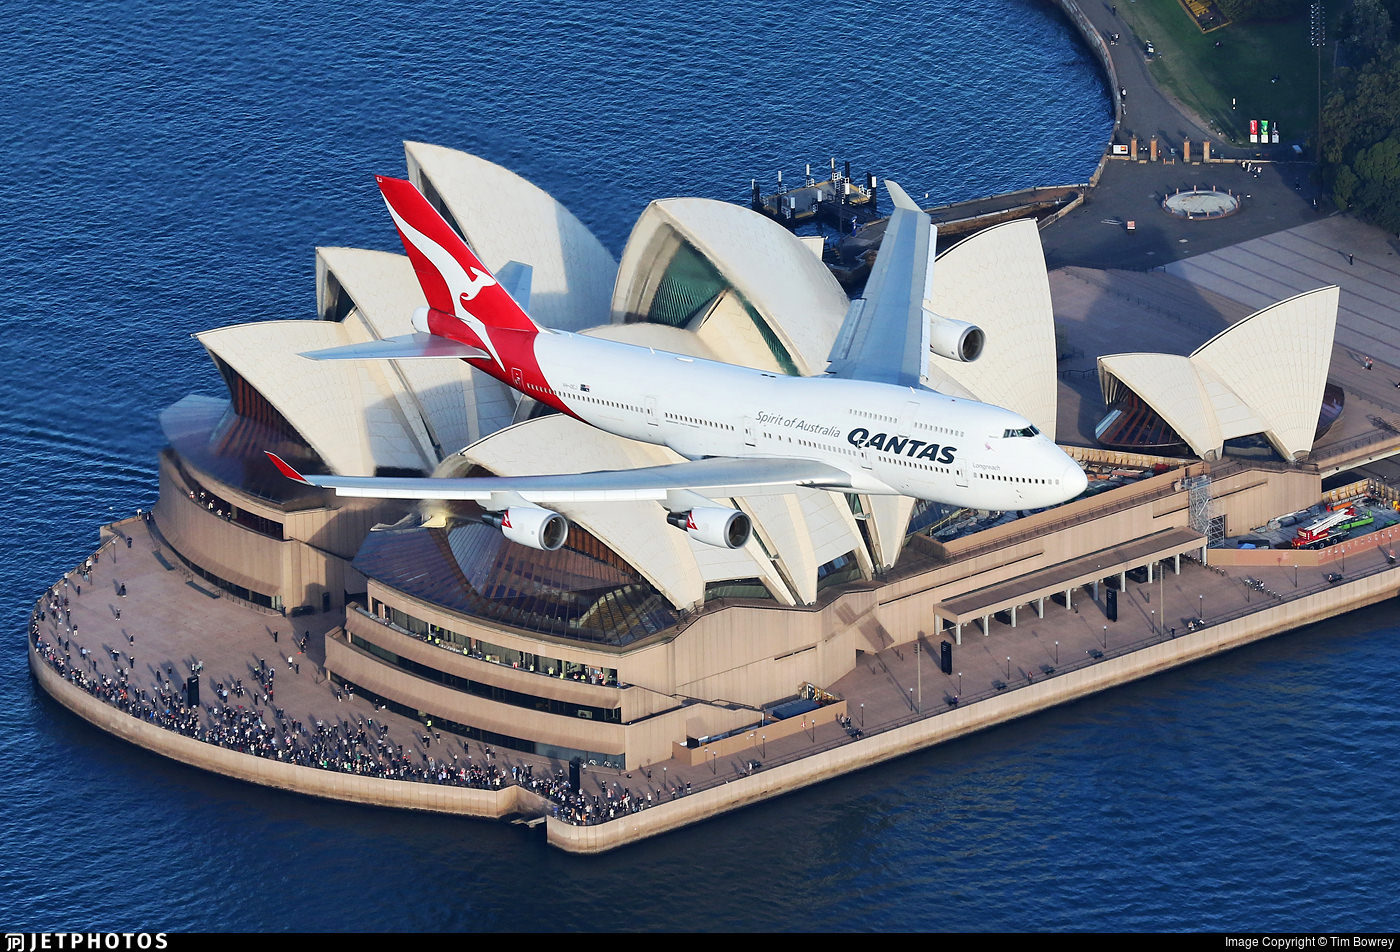 VH-OEJ over the Sydney Opera House